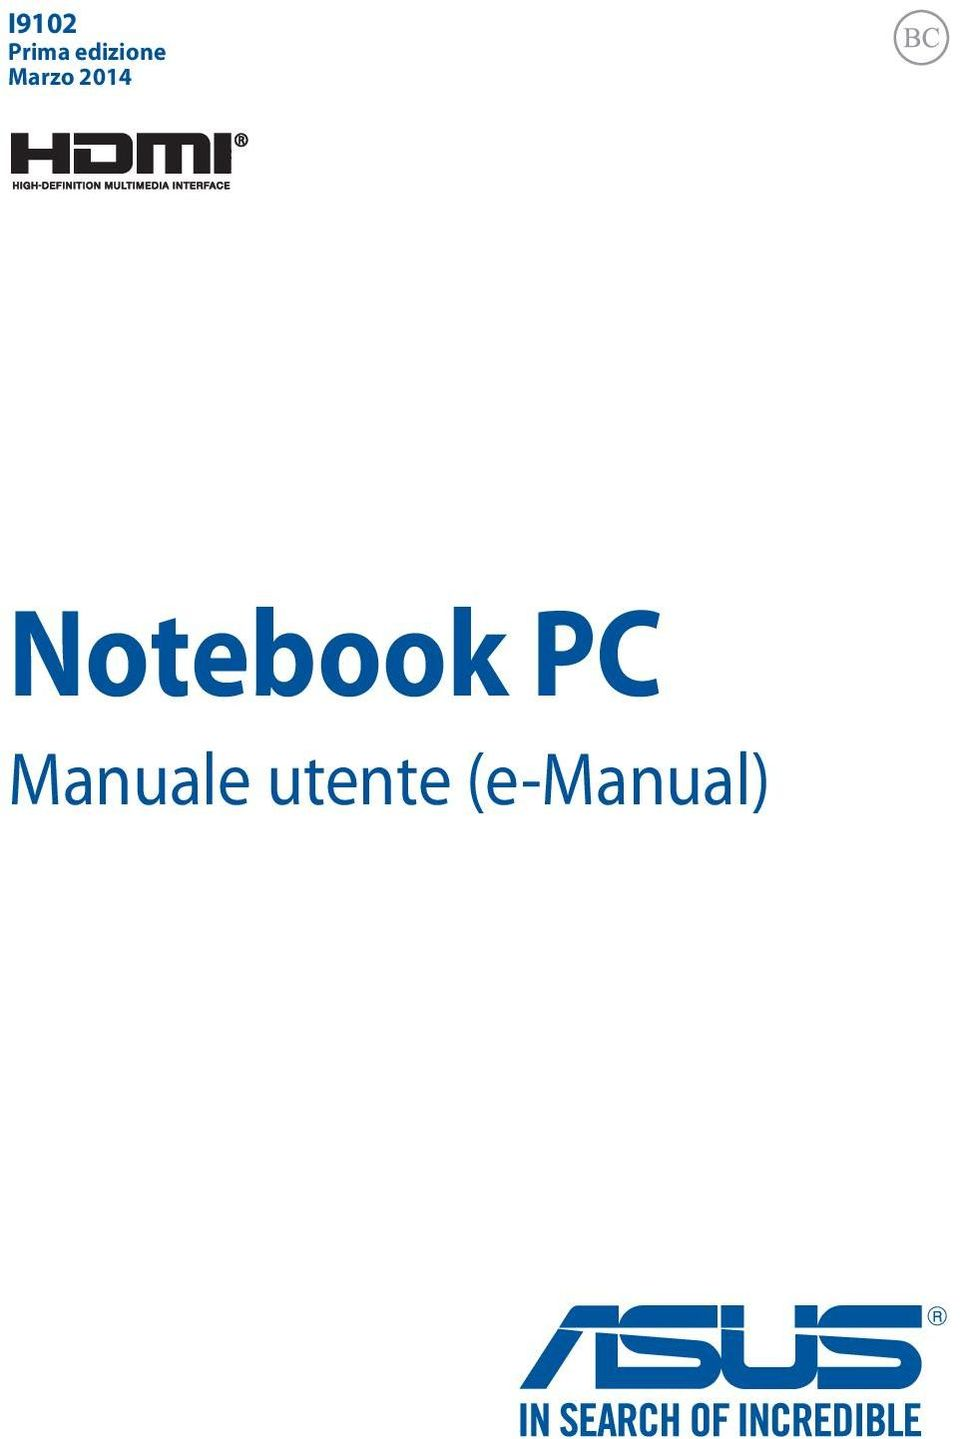 2014 Notebook PC